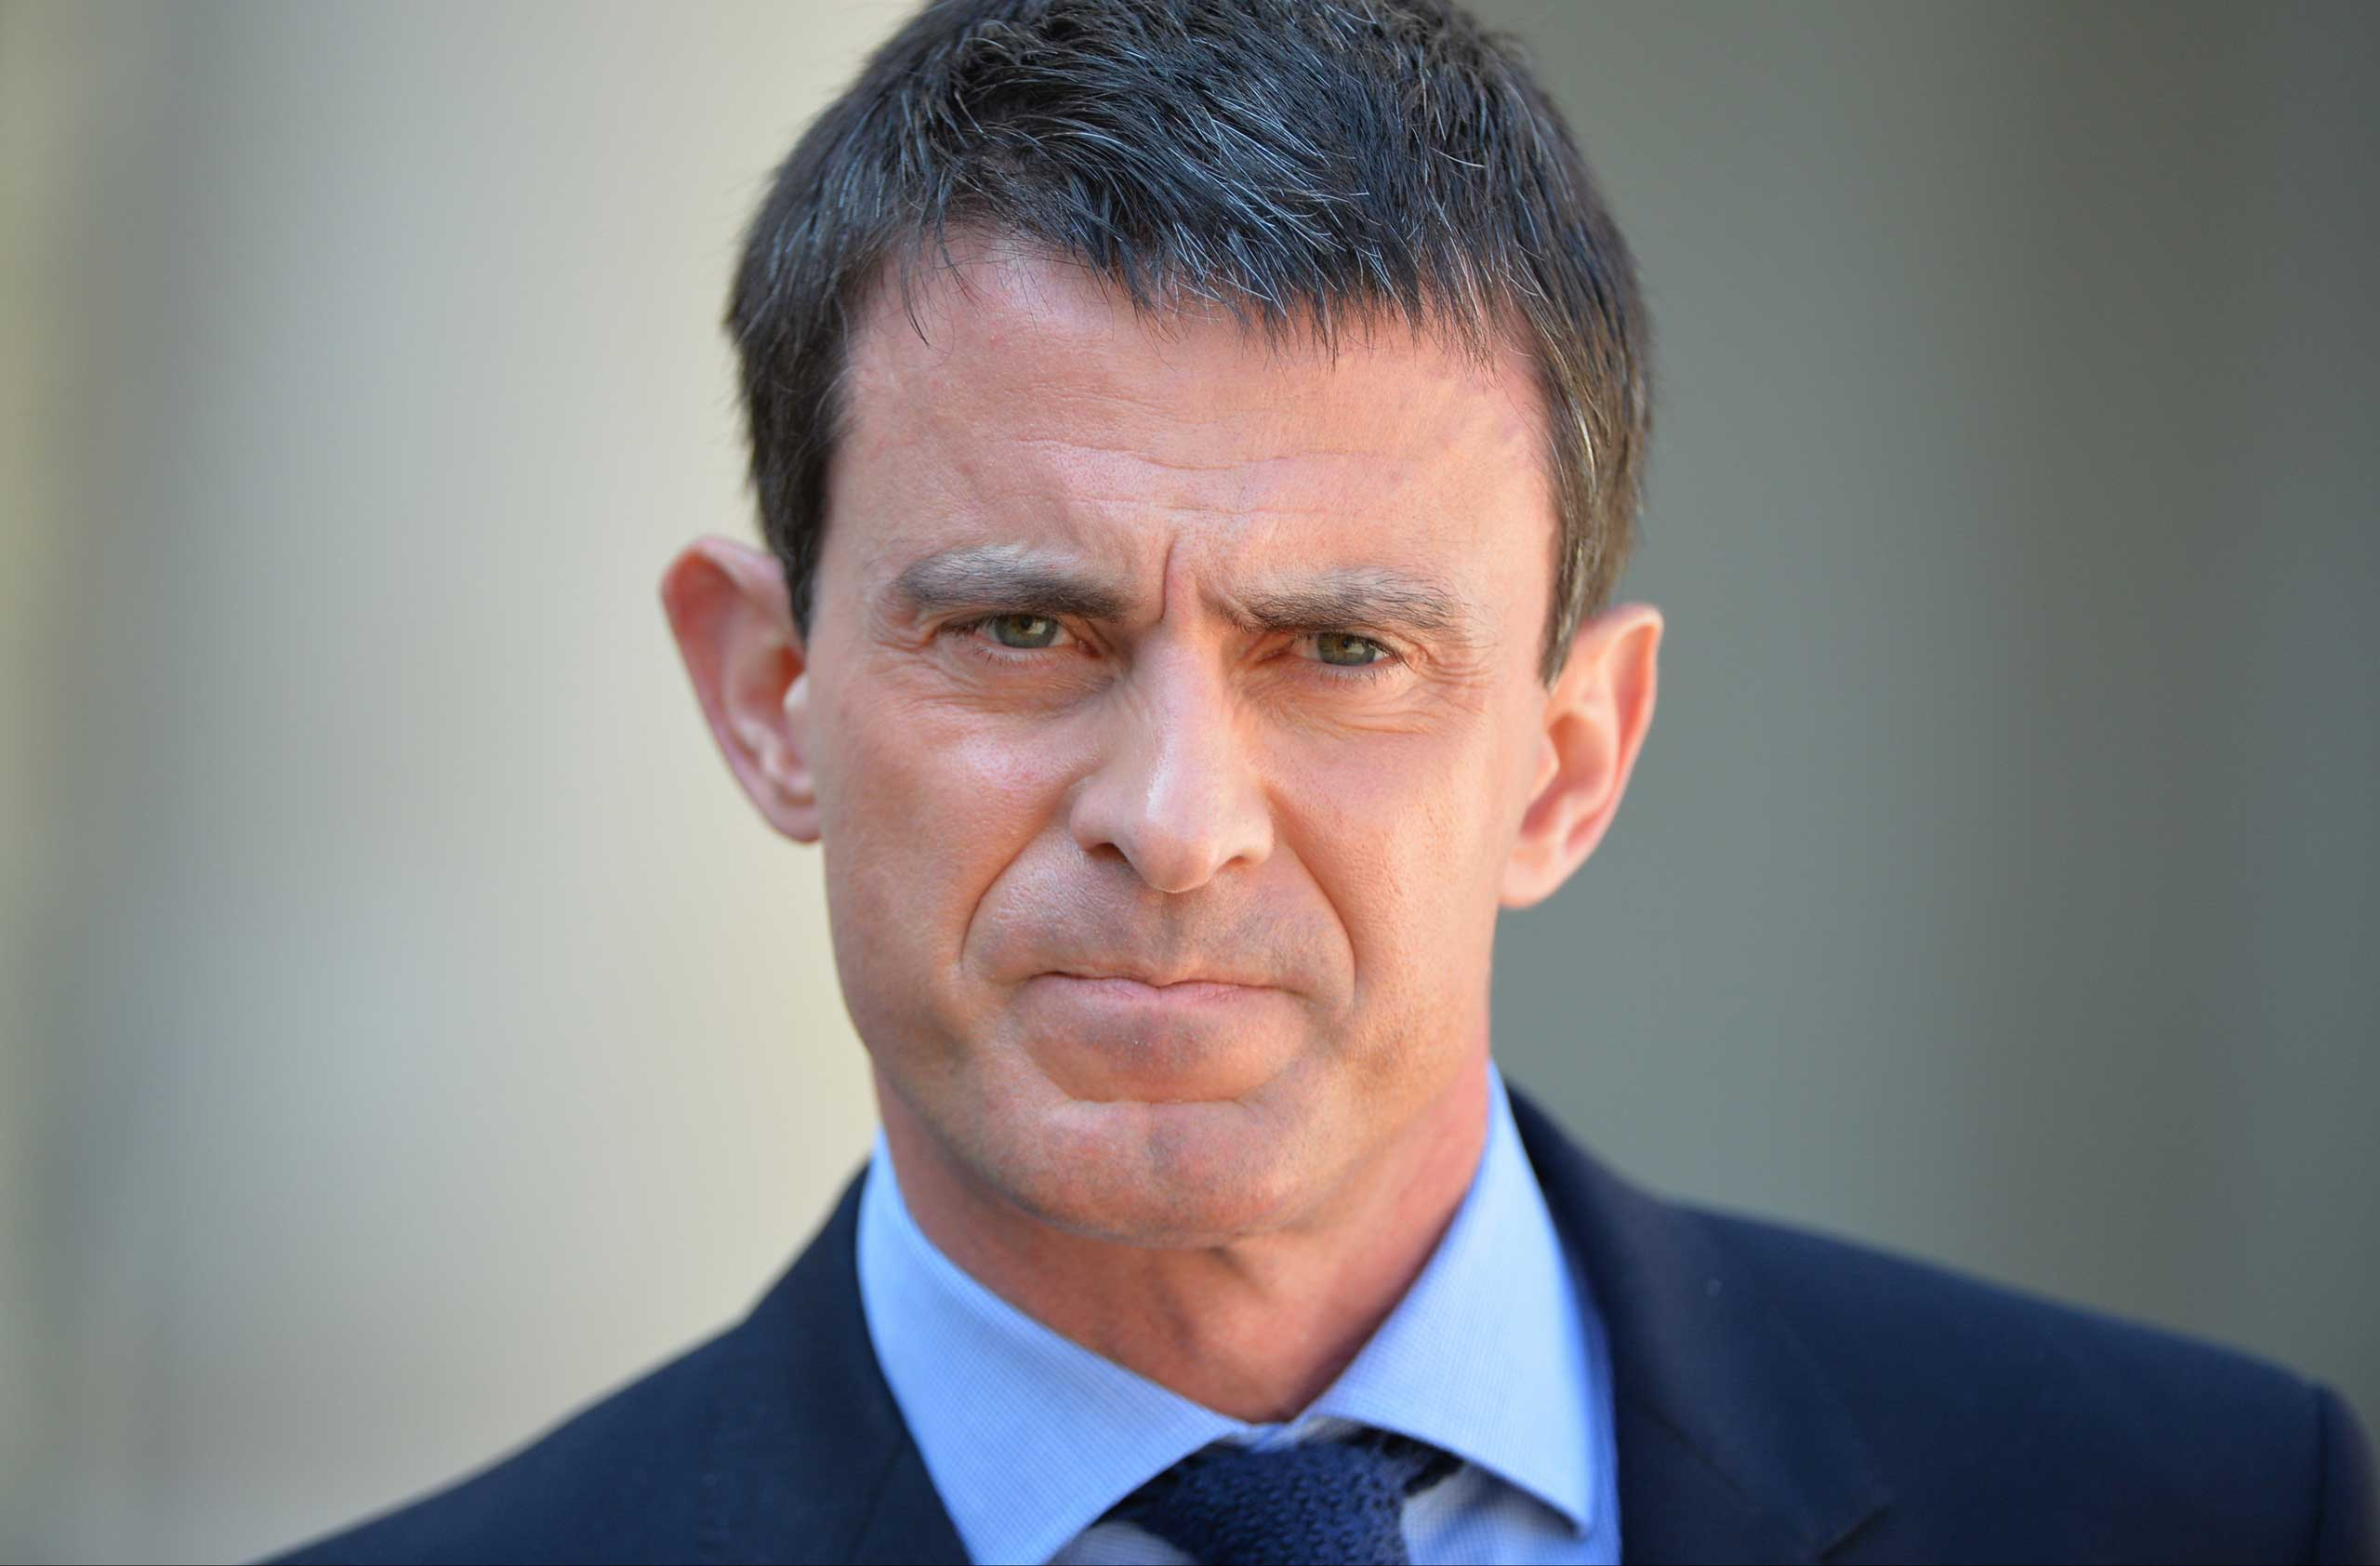 French Prime Minister Manuel Valls makes a statement following the weekly cabinet meeting at the Elysee Palace in Paris on April 22, 2015.